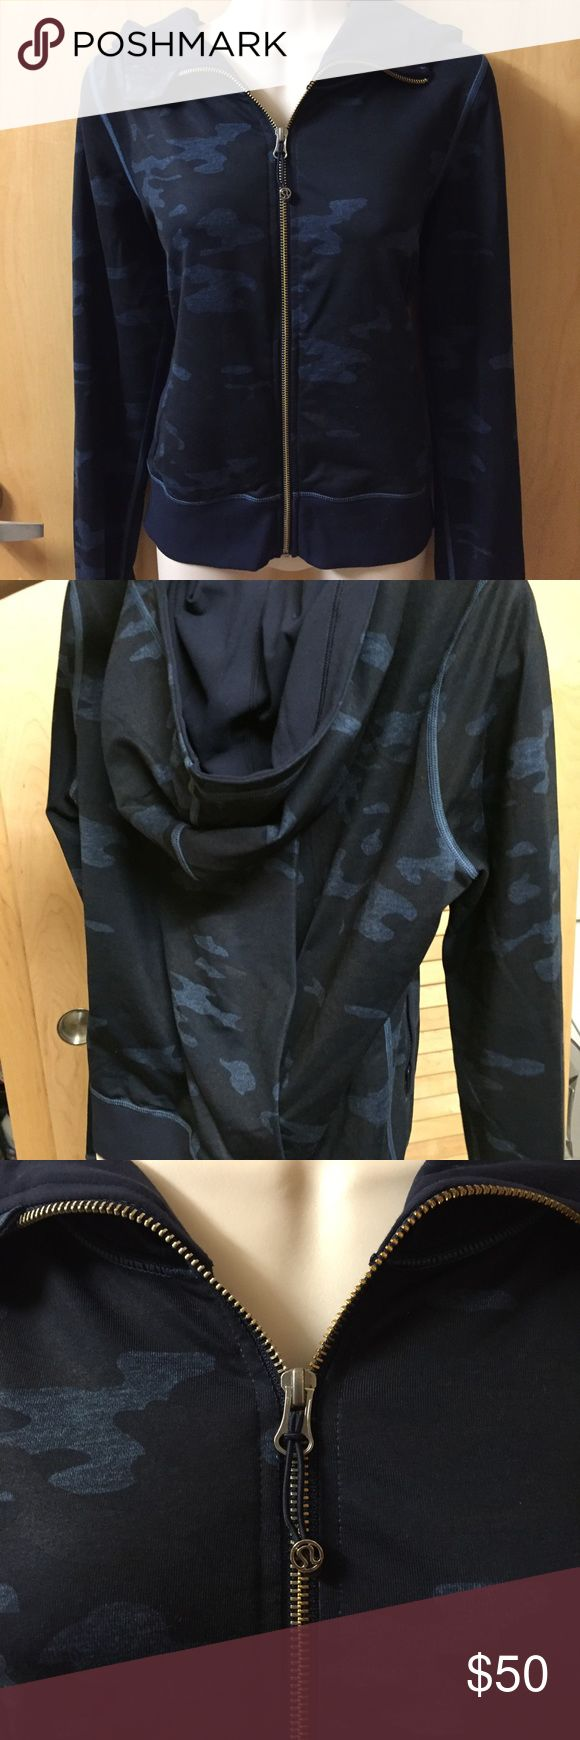 Lululemon Oil Slick Camo Namaskar Hoodie Sz 6 Like new. Only worn once. Drapey fit with a pleat on the back. Navy camo print with gold zipper. Smooth Luon fabric. No trades. Bundle for a discount. lululemon athletica Jackets & Coats